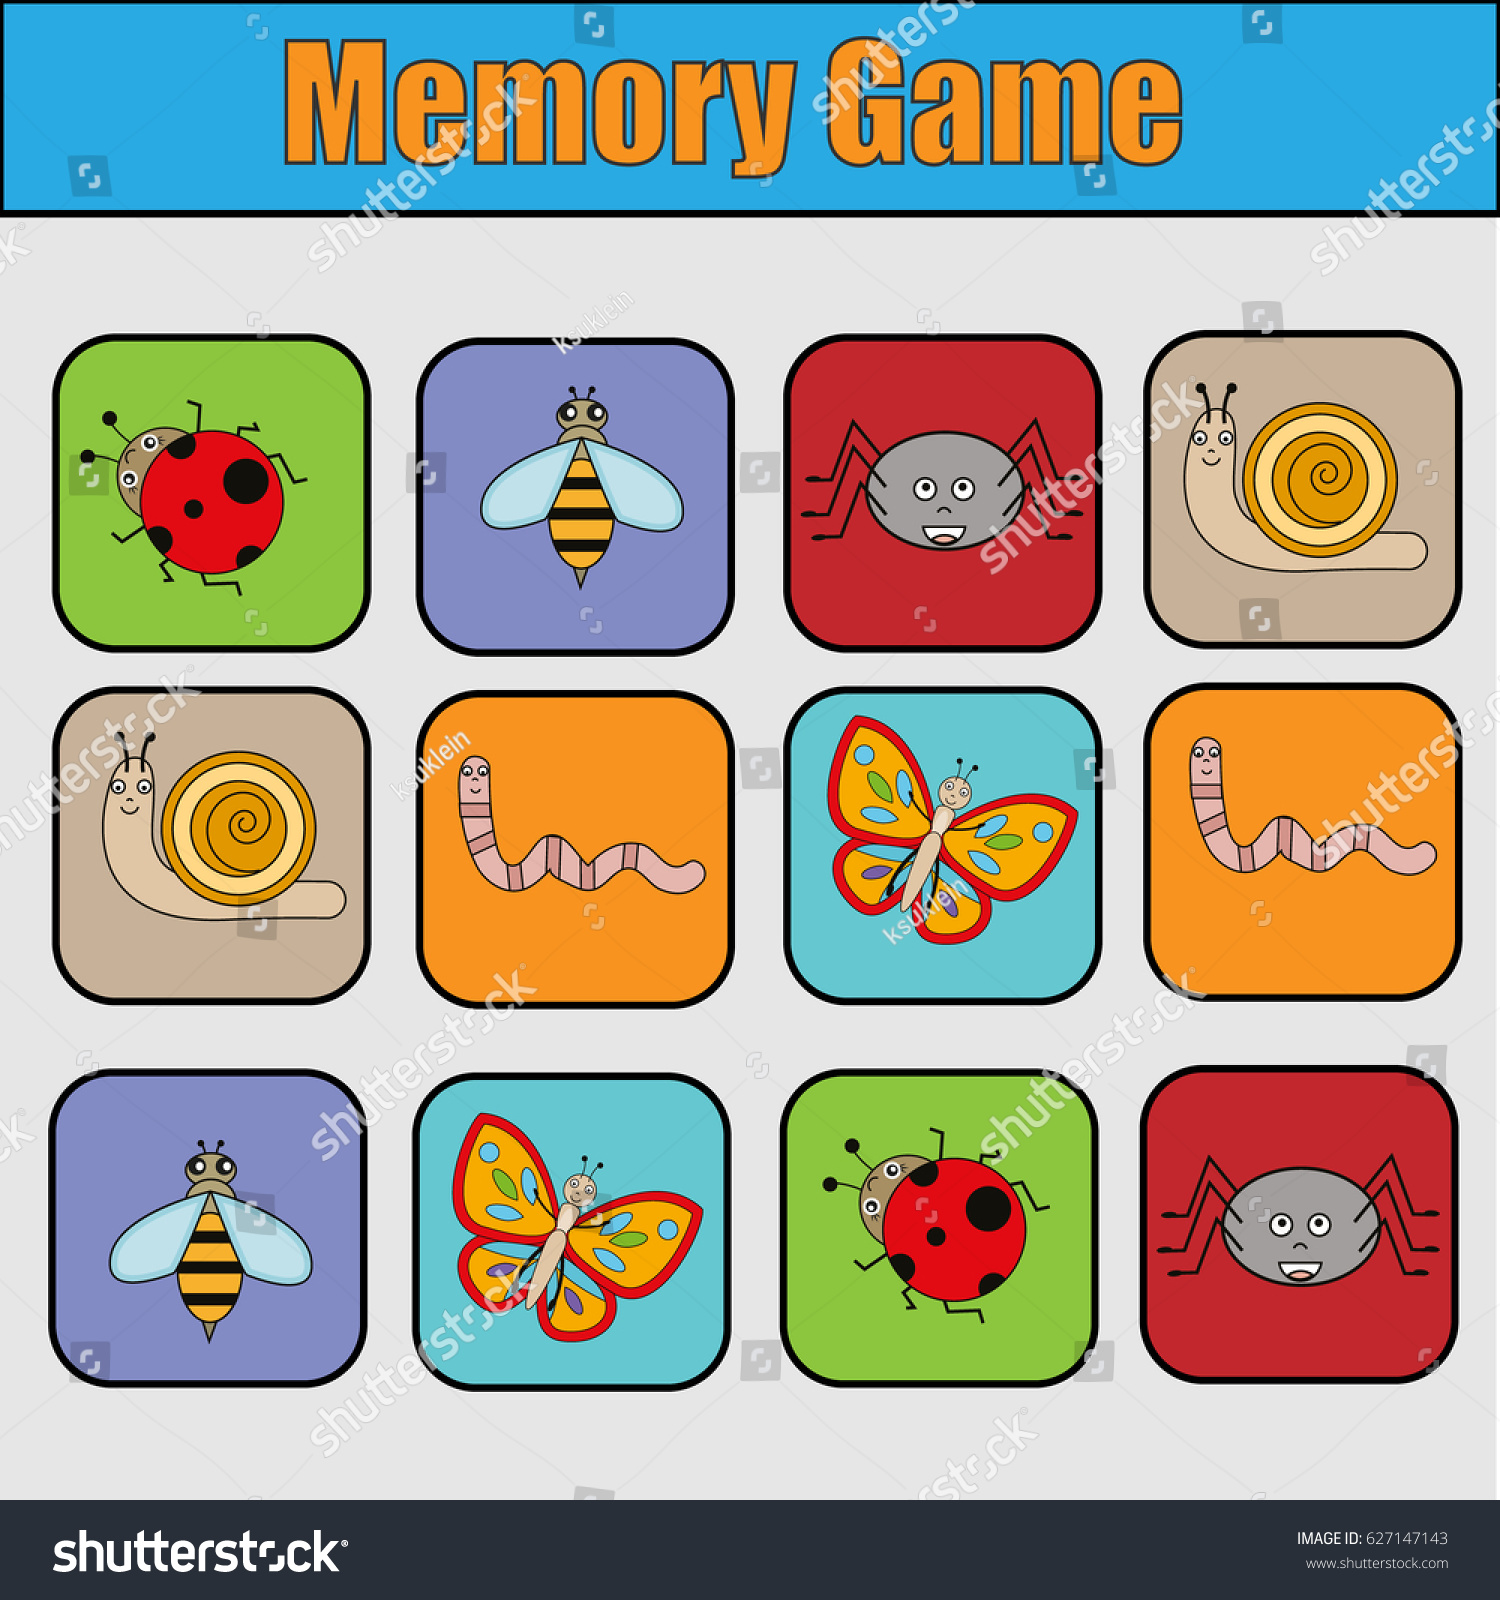 Uncategorized Memory Pairs educational children game kids activity memory stock illustration with insects find pairs of same